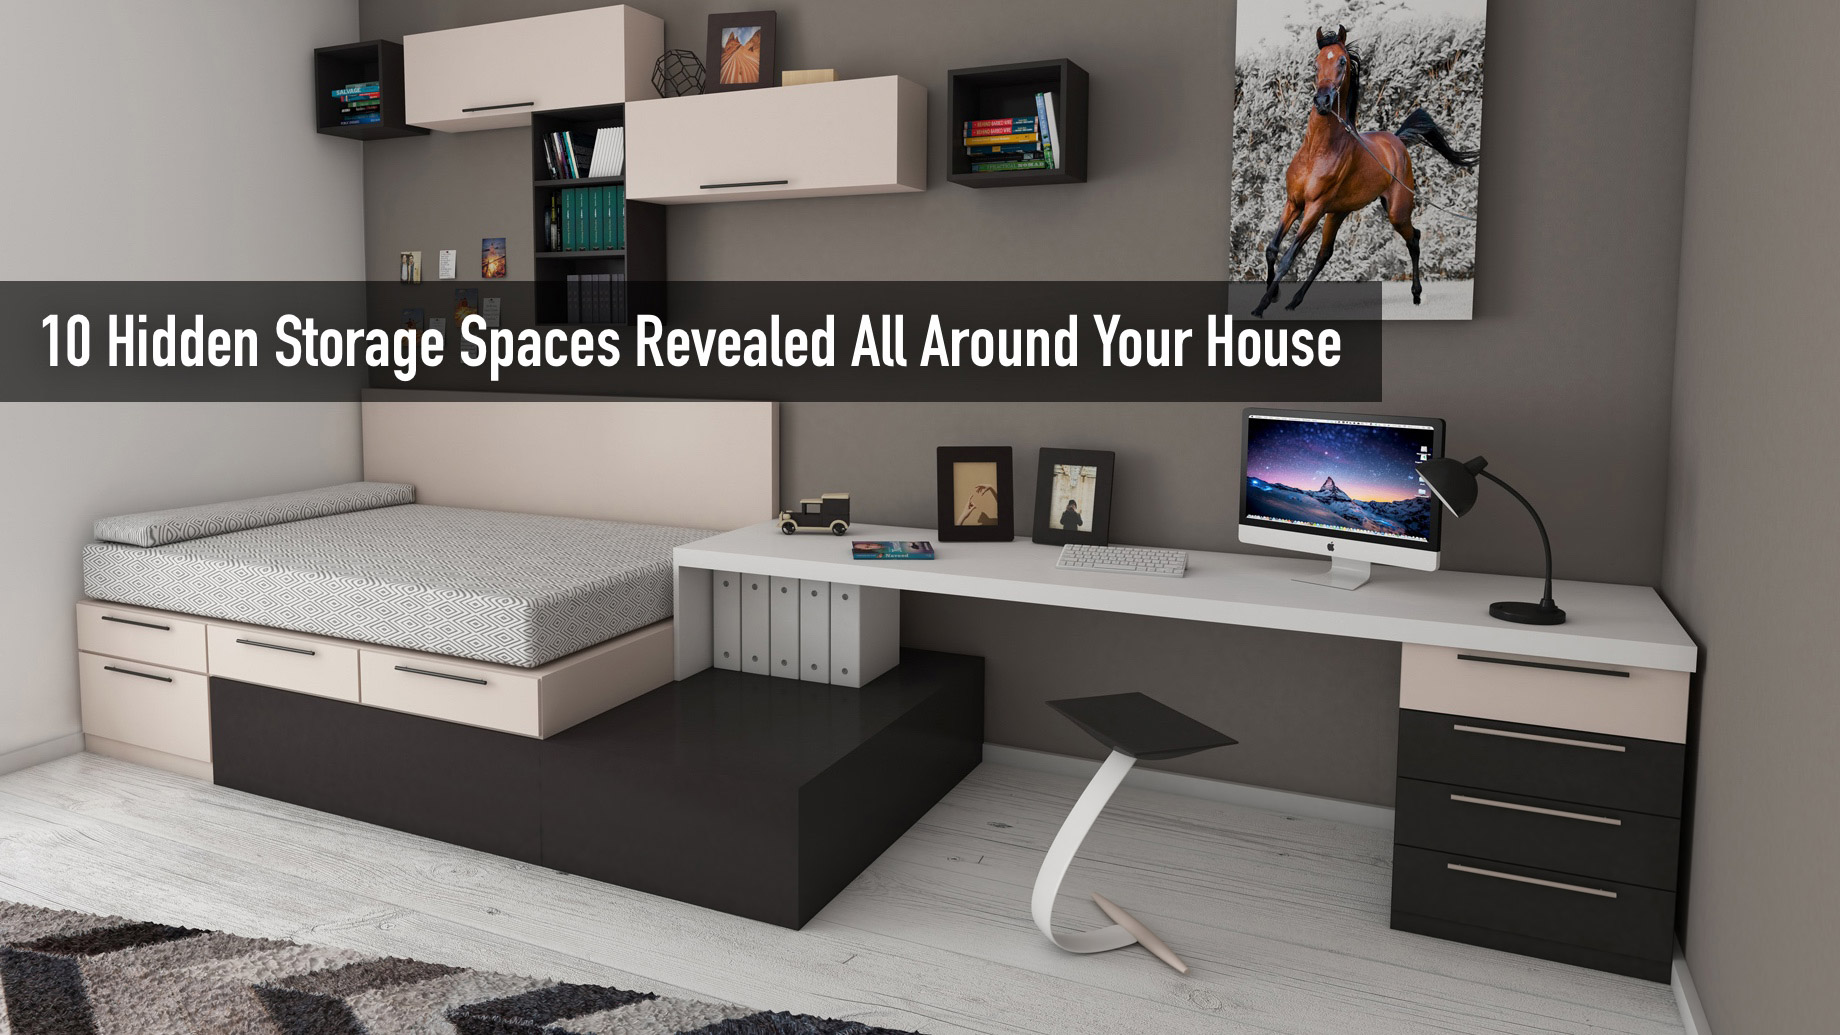 Remove the Clutter - 10 Hidden Storage Spaces Revealed All Around Your House